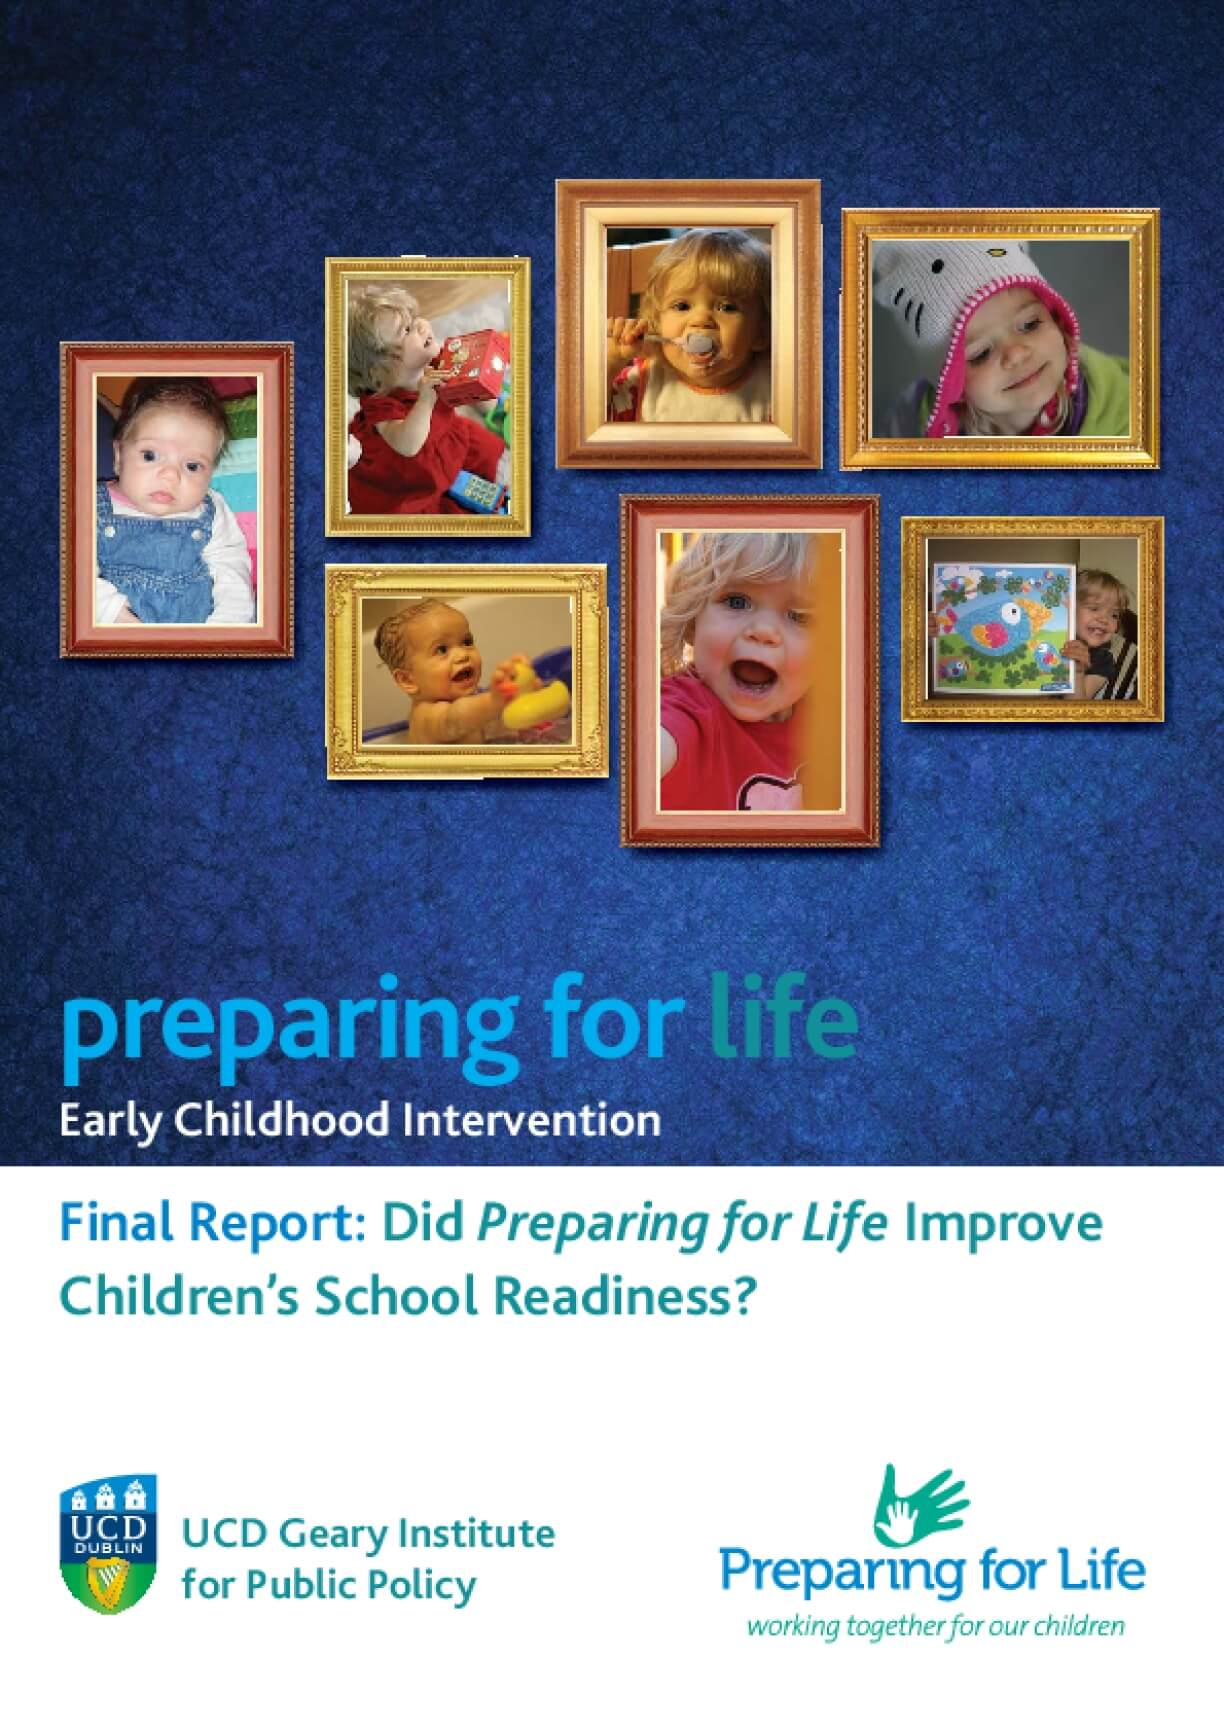 Final Report: Did Preparing For Life Improve Children's School Readiness: Early Childhood Intervention